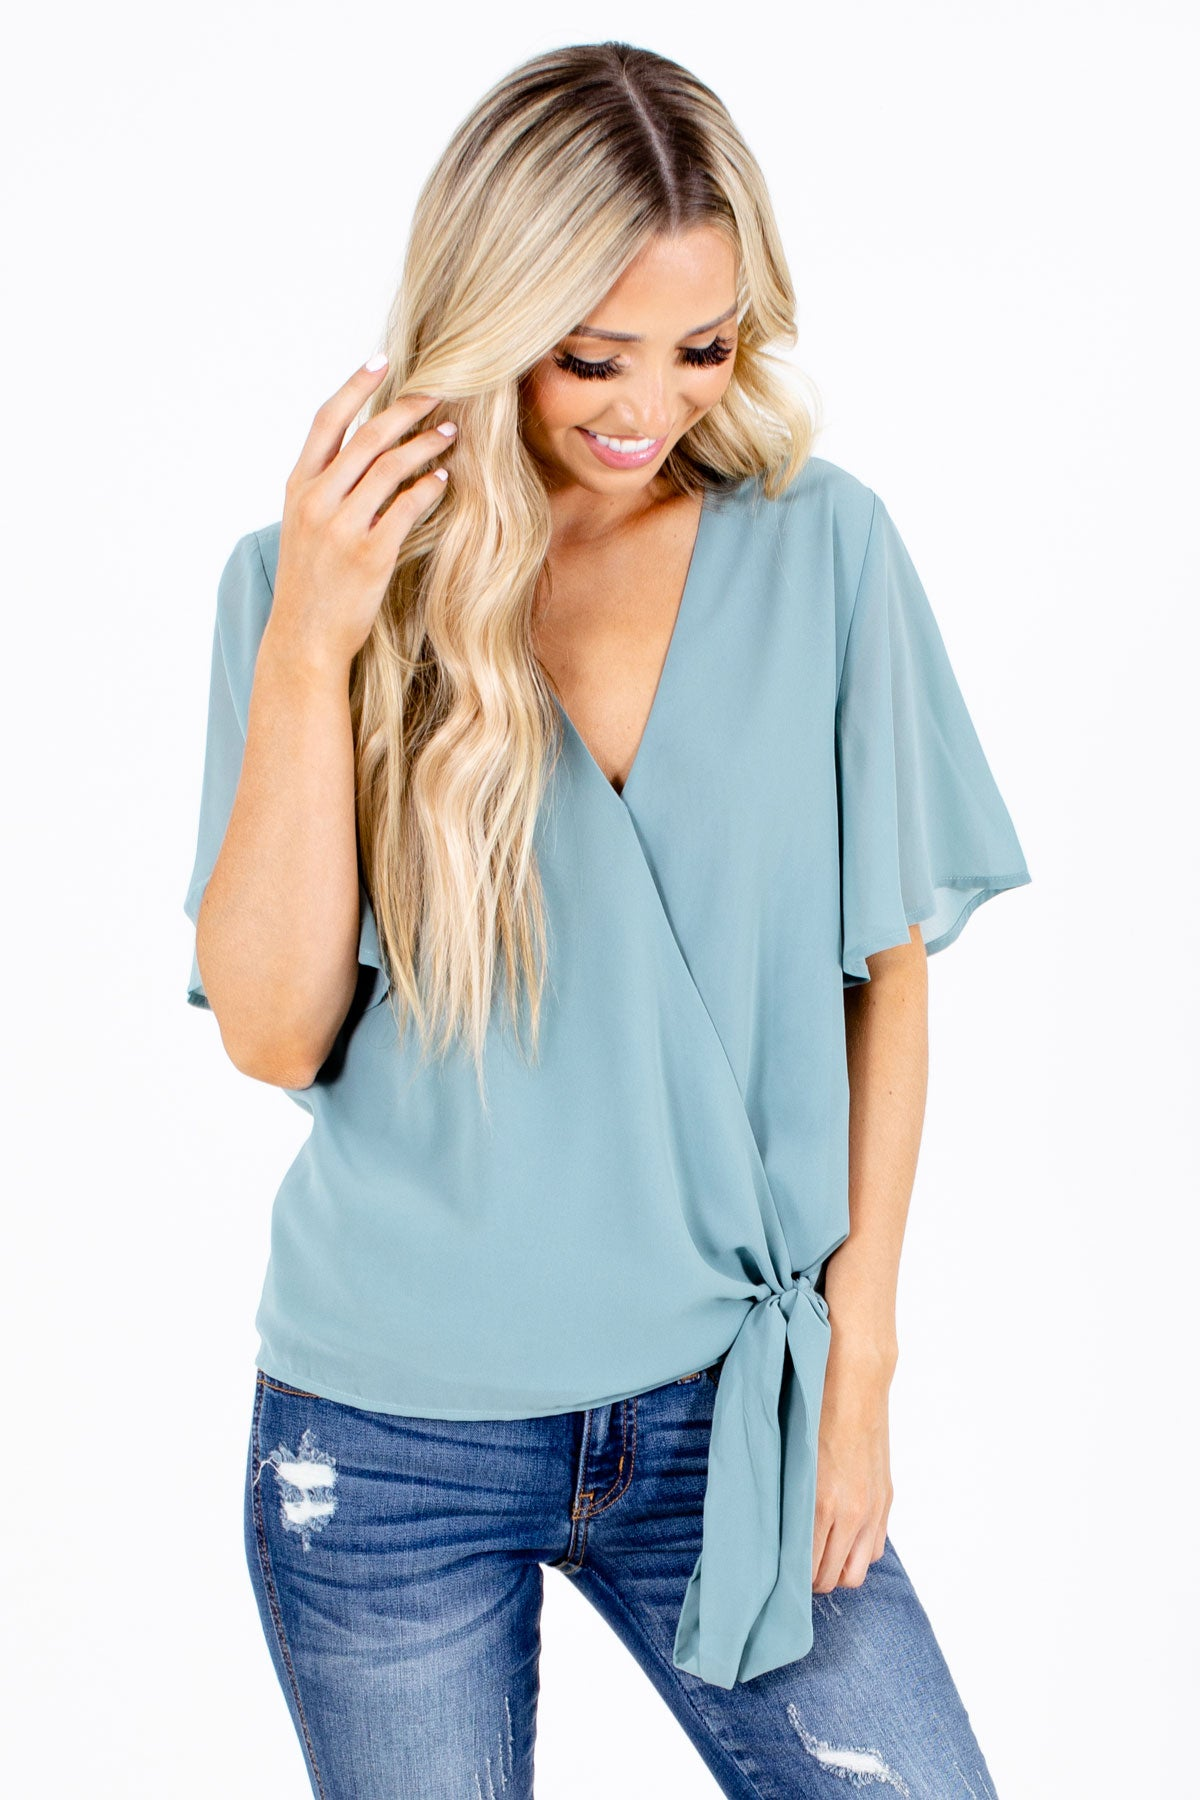 Green Wrap Style Boutique Blouses for Women